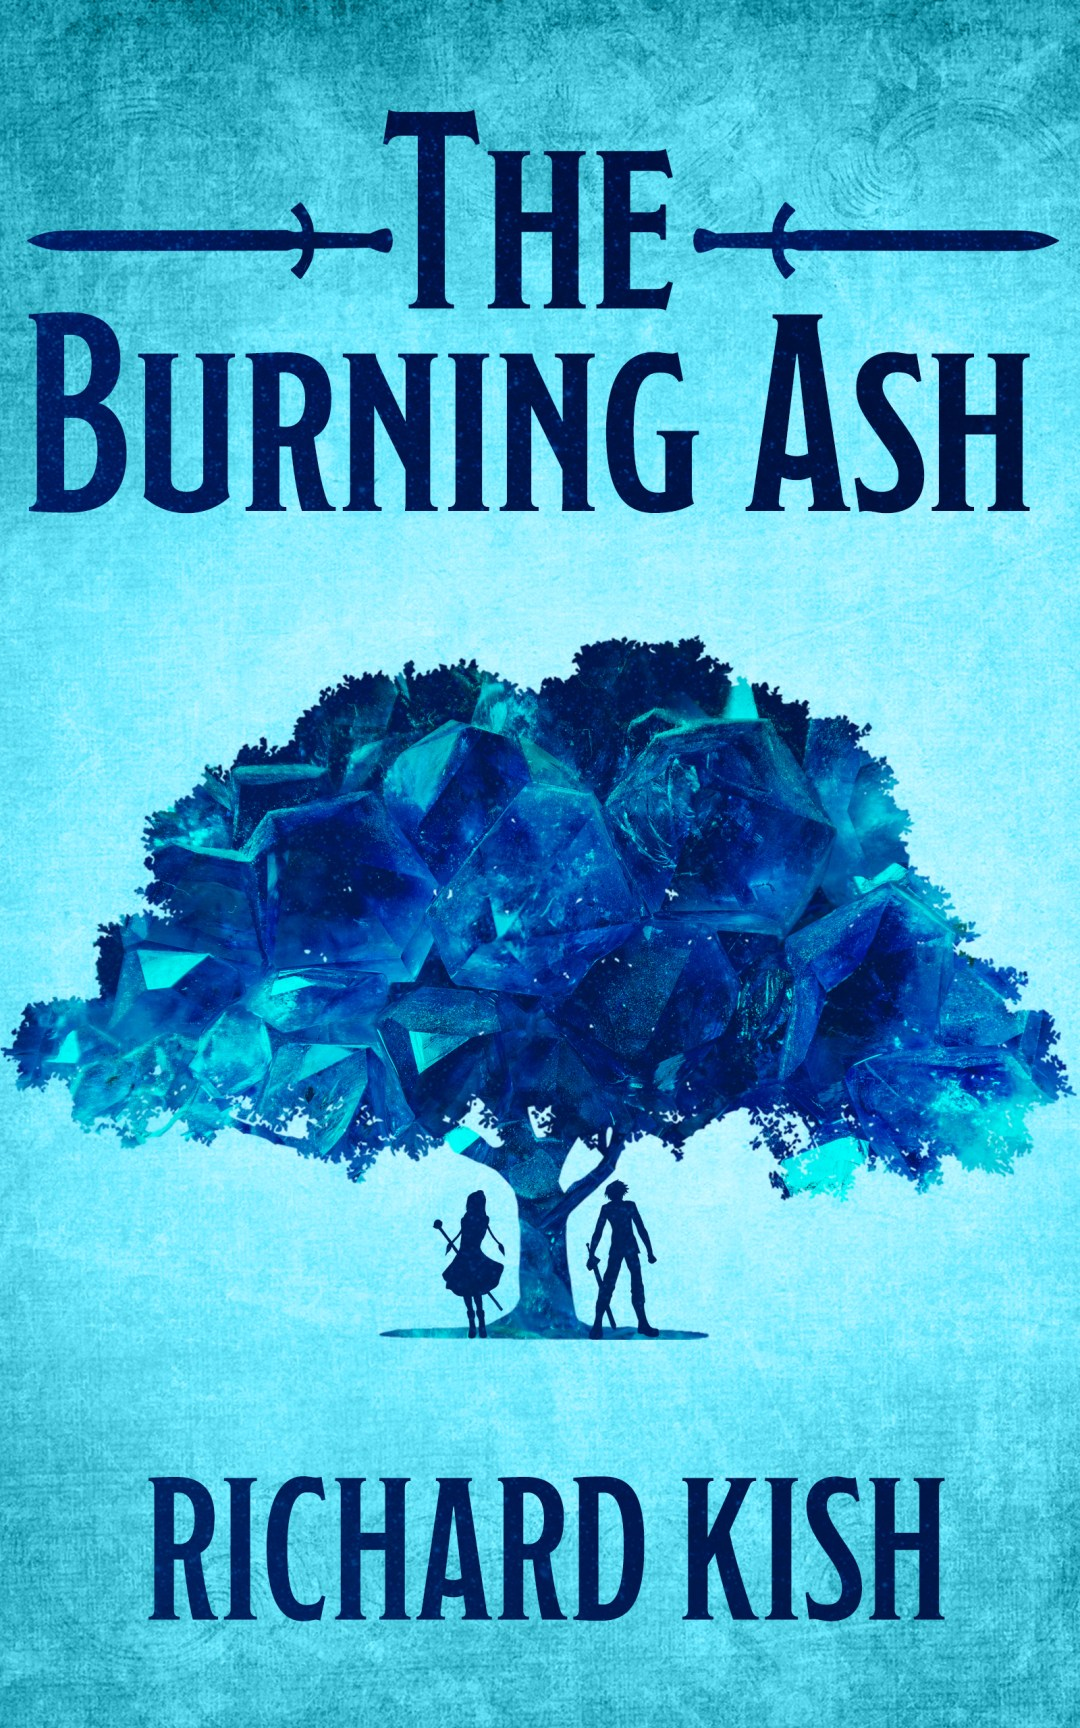 The Front Cover of The Burning Ash